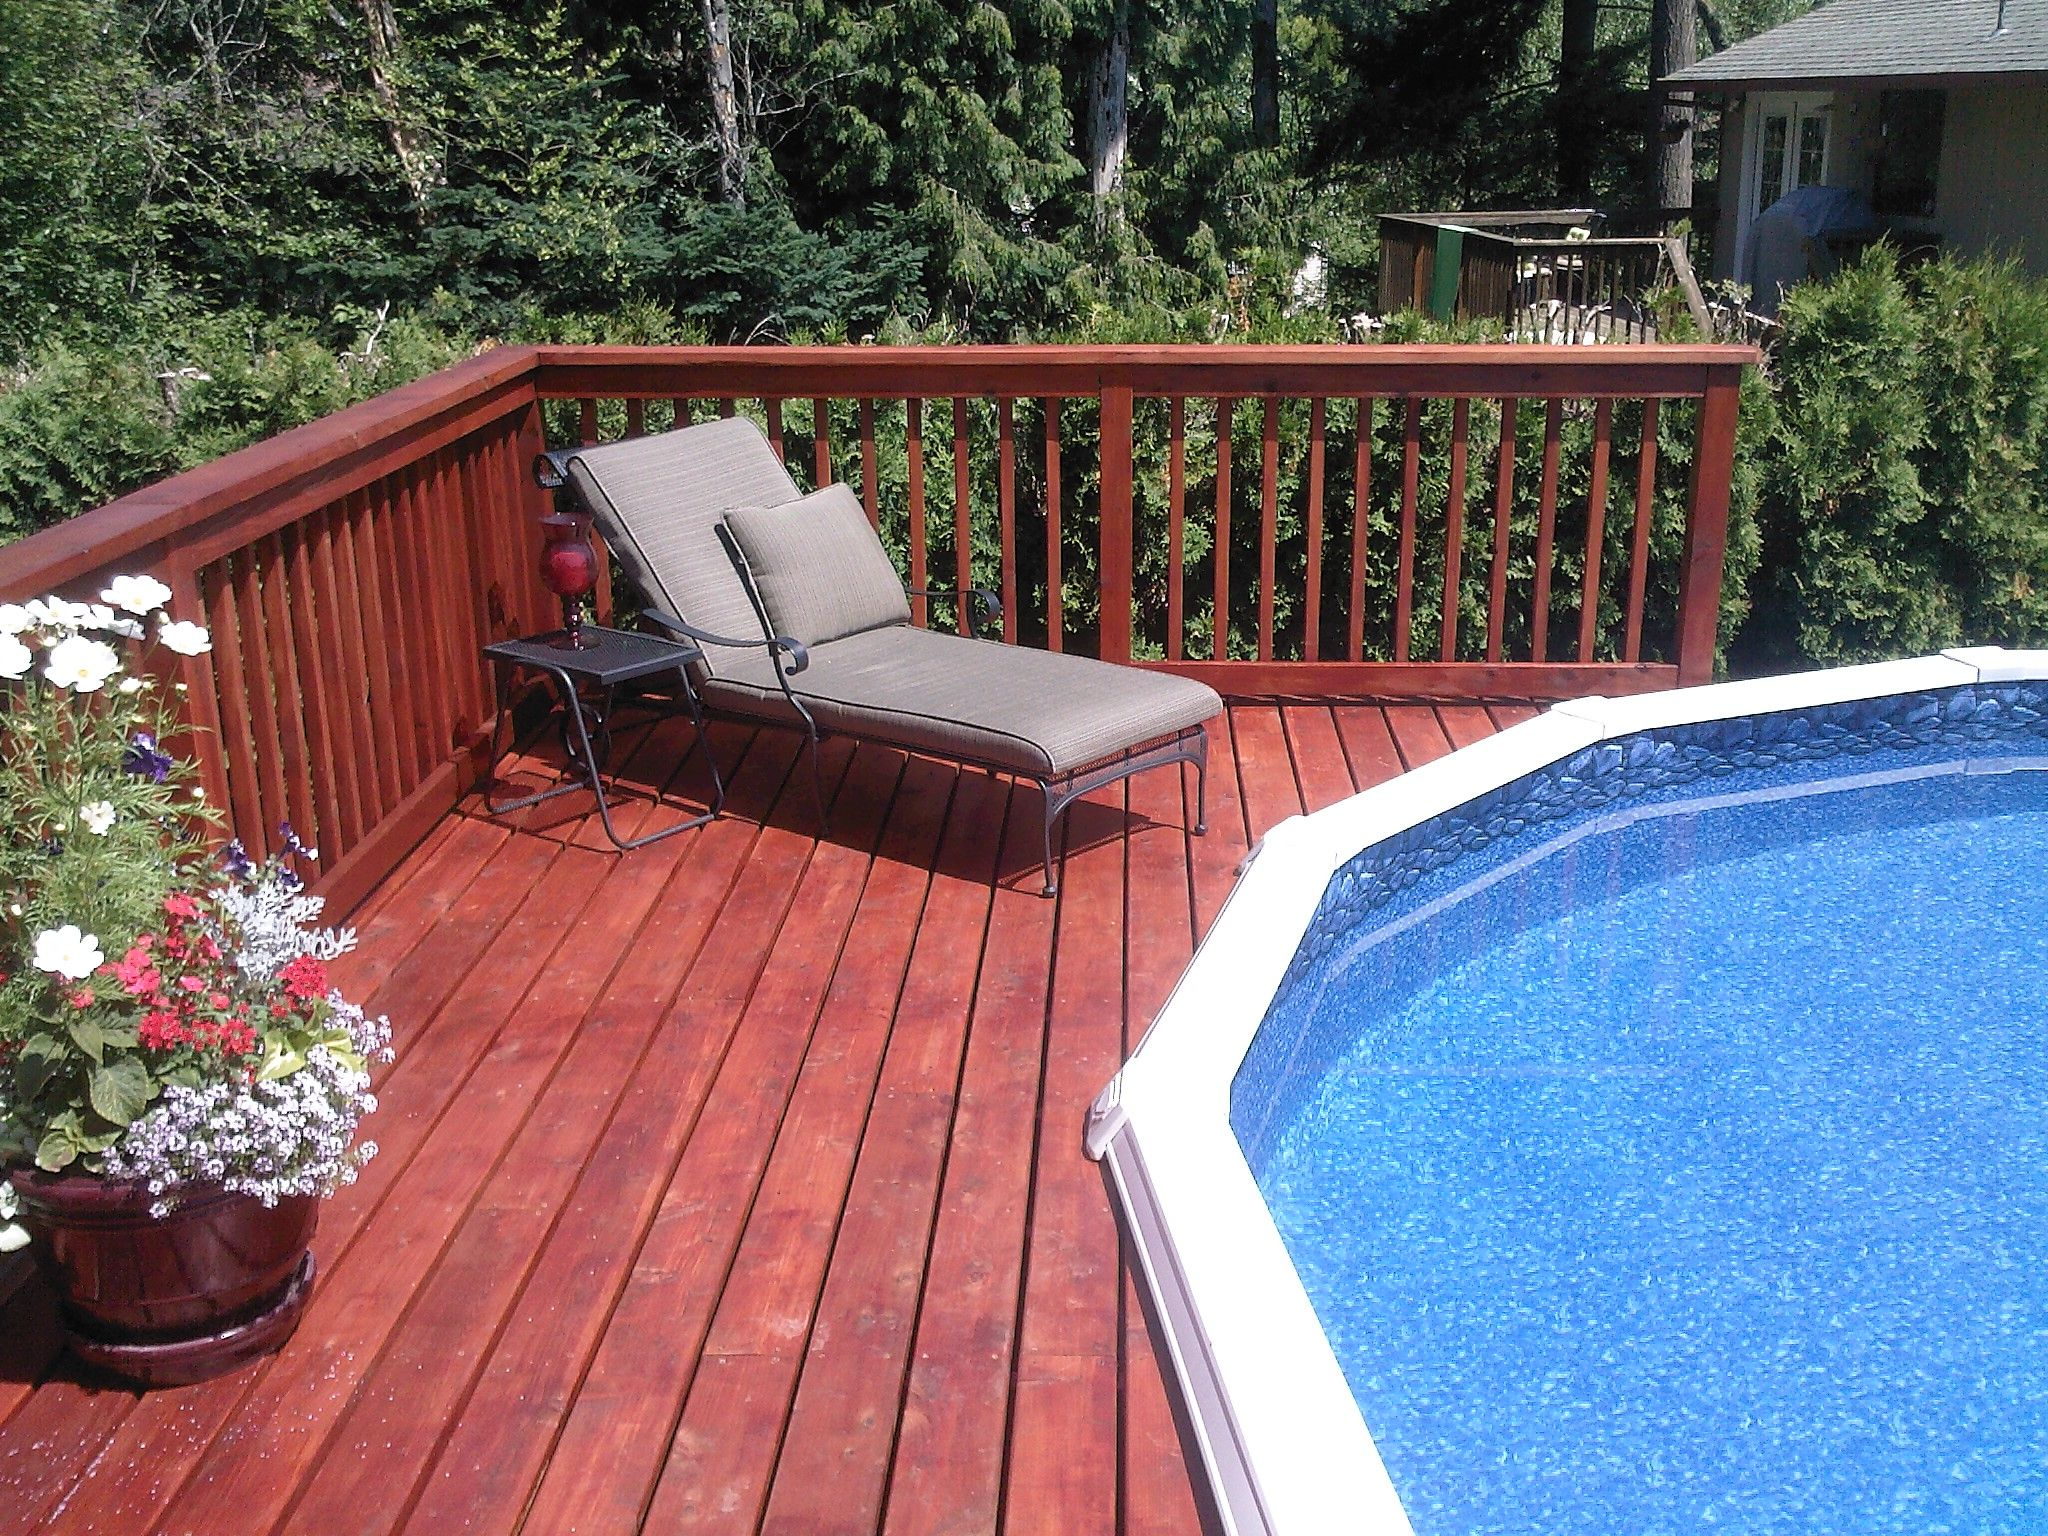 Above Ground Pool Deck Get The Facts Patio Deck Designs Idea Pool Patio Pool Deck Plans Backyard Pool